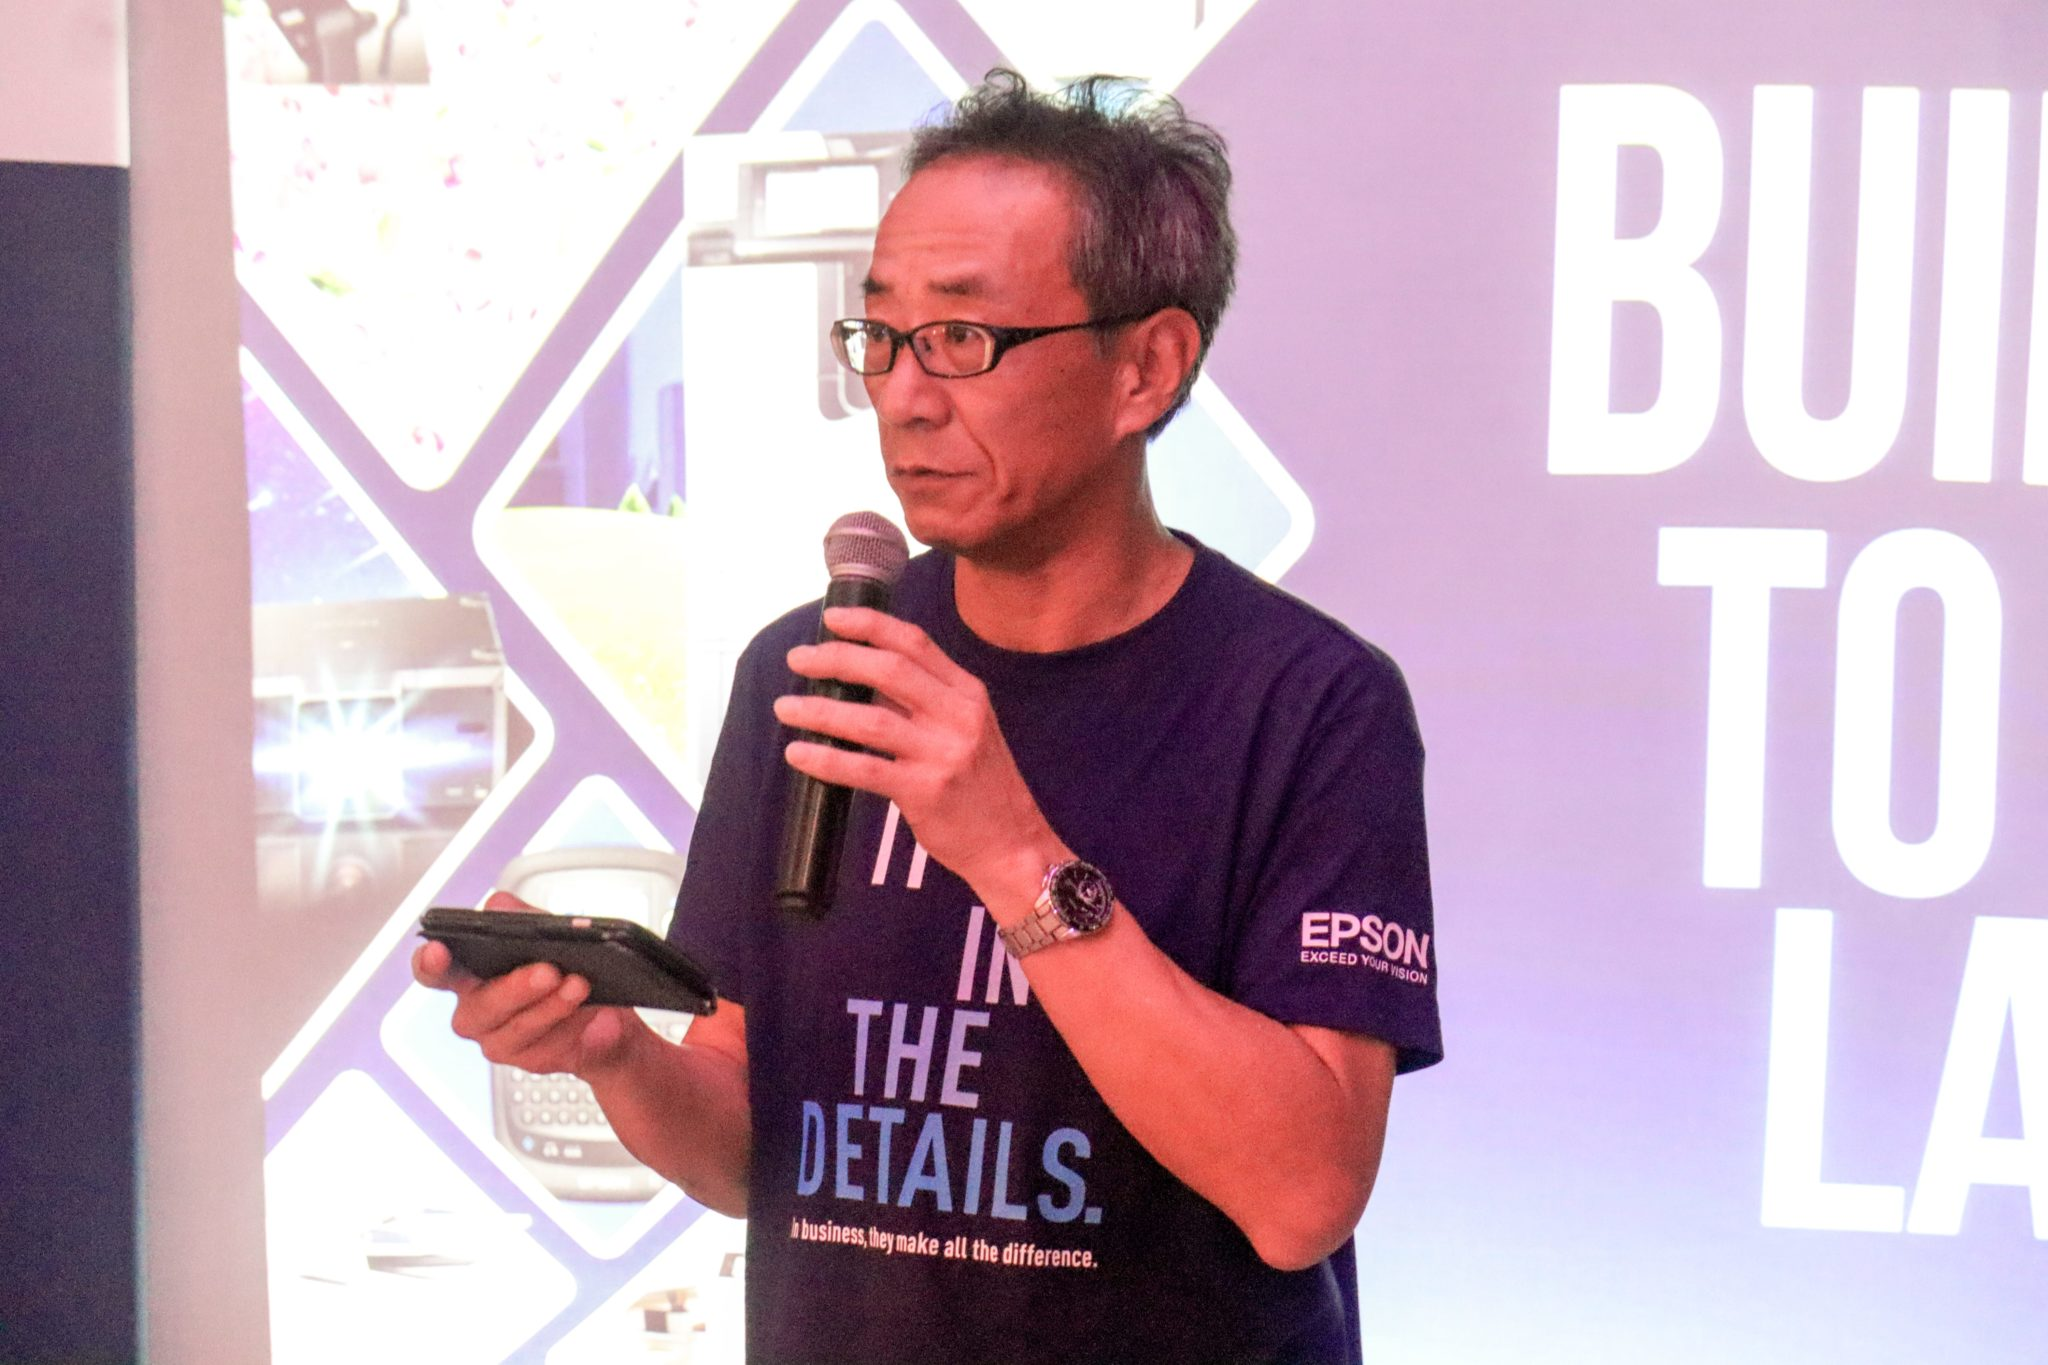 Epson PH aims to maintain bullish market share this 2019 | Iconic MNL